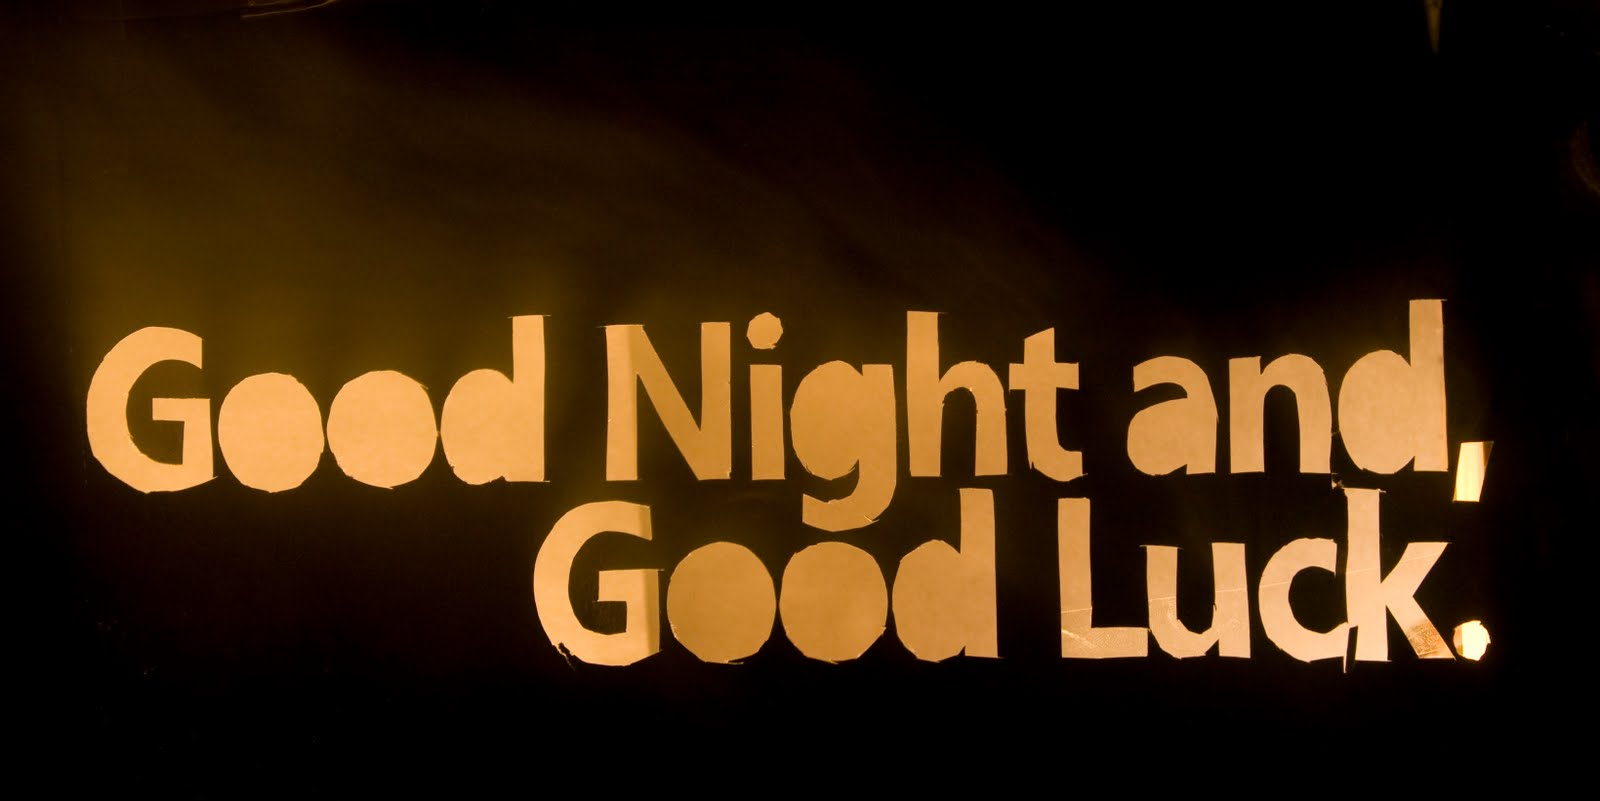 good night and good luck essays Good night and good luck essay - free download as word doc (doc / docx), pdf file (pdf), text file (txt) or read online for free.